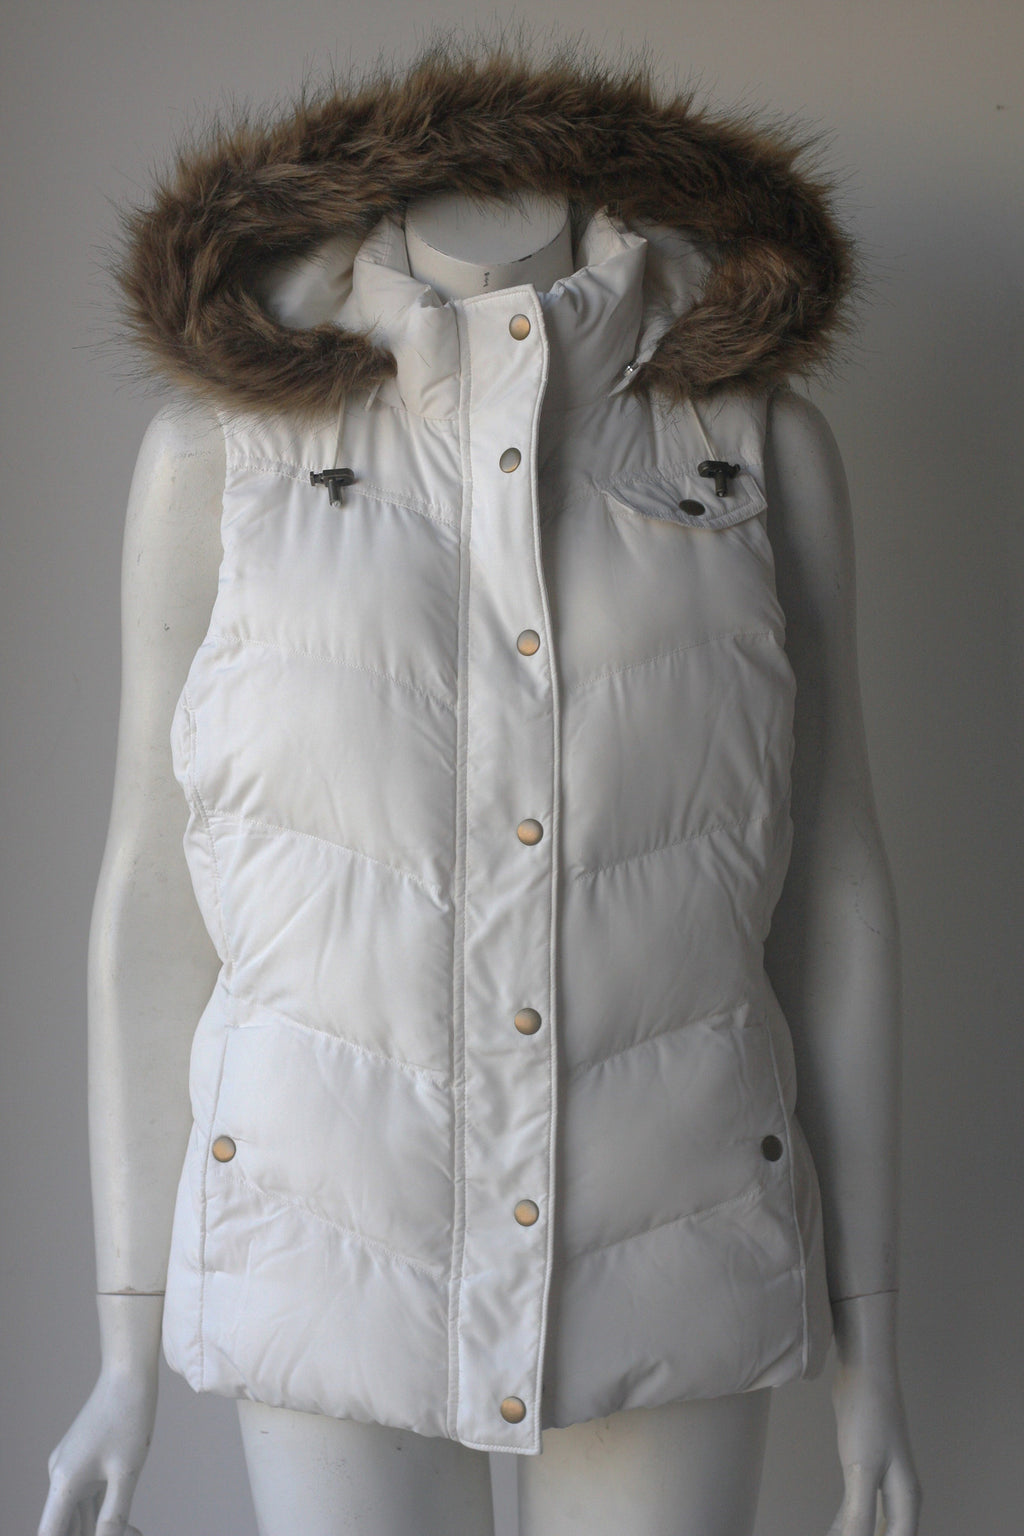 Brand New Banana Republic White Hooded Faux Fur Puffer Vest - Joyce's Closet  - 1